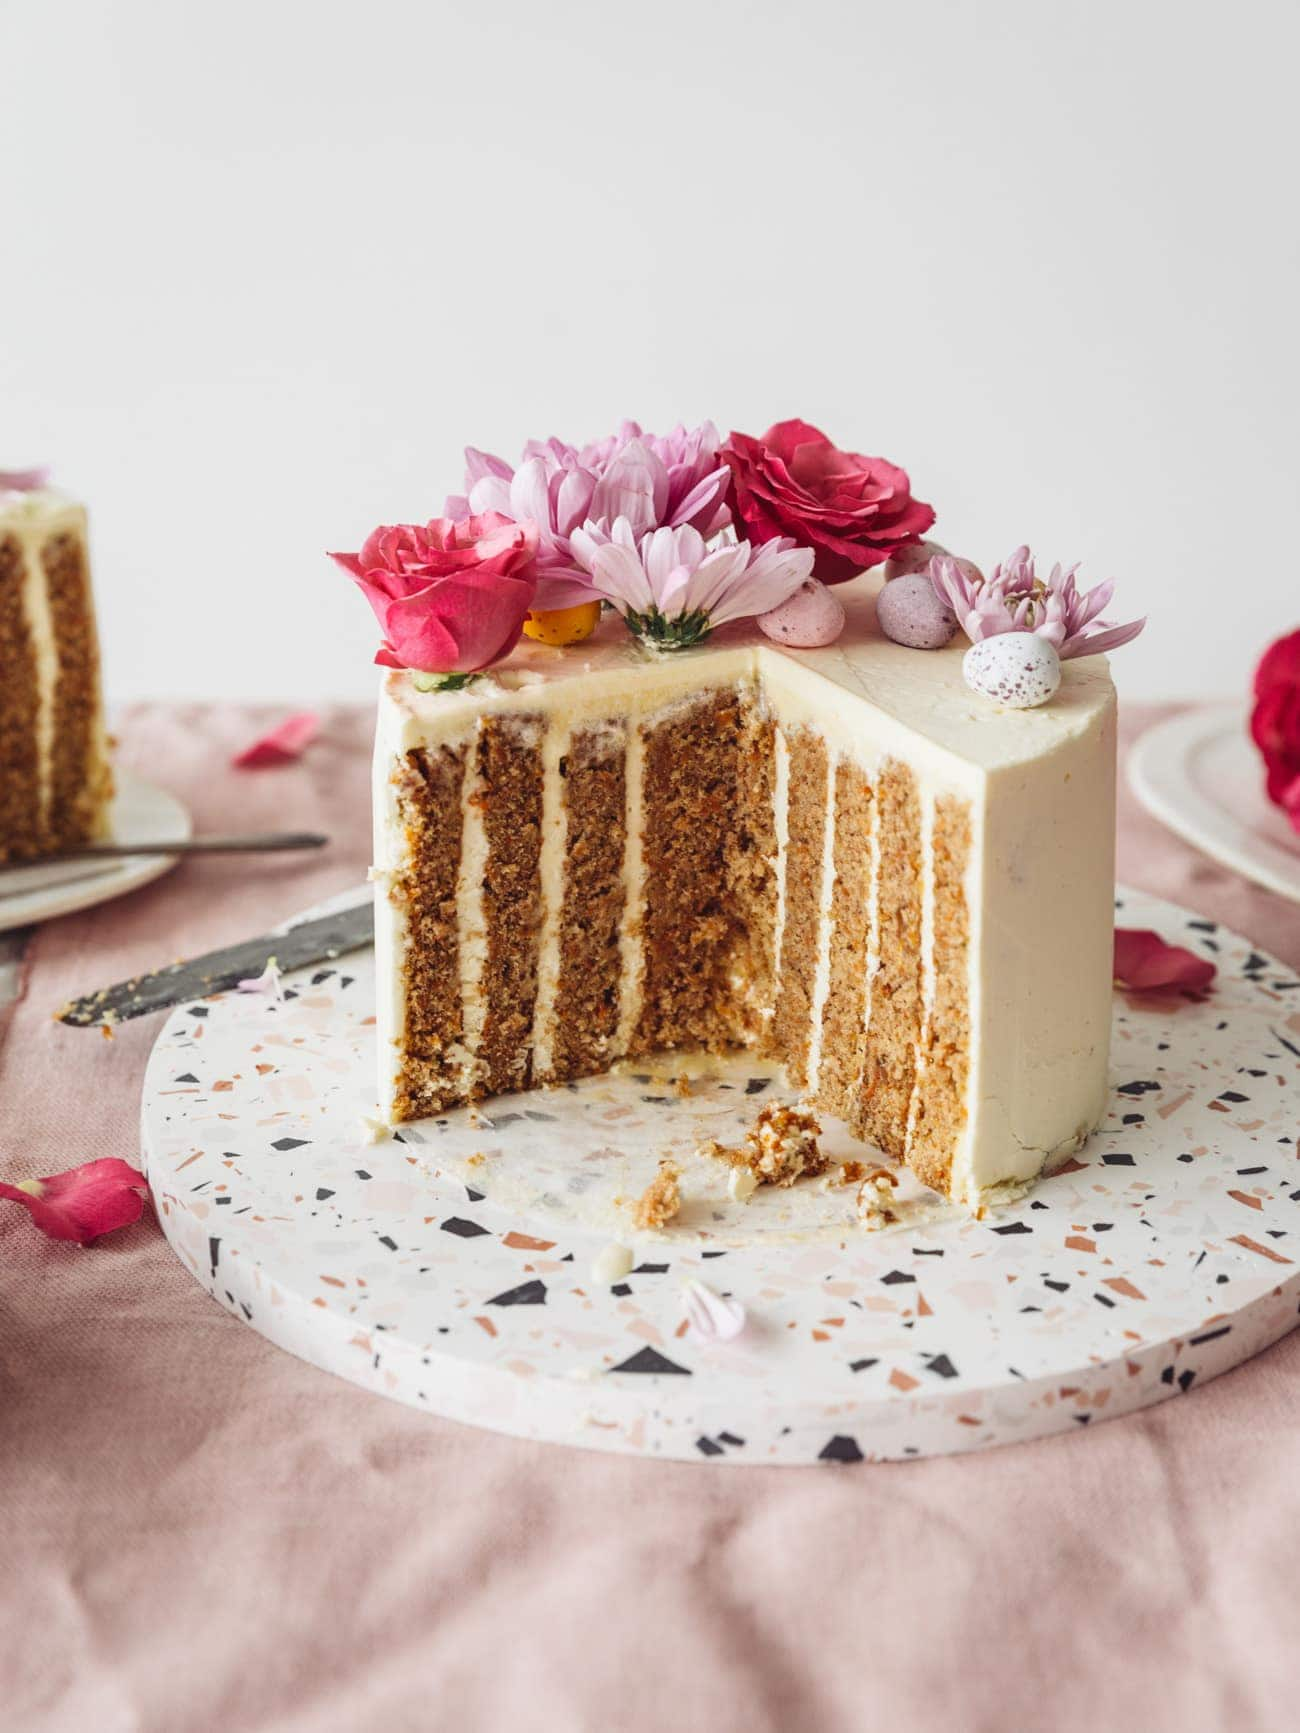 Vertical Layer Carrot Cake Izy Hossack Top With Cinnamon